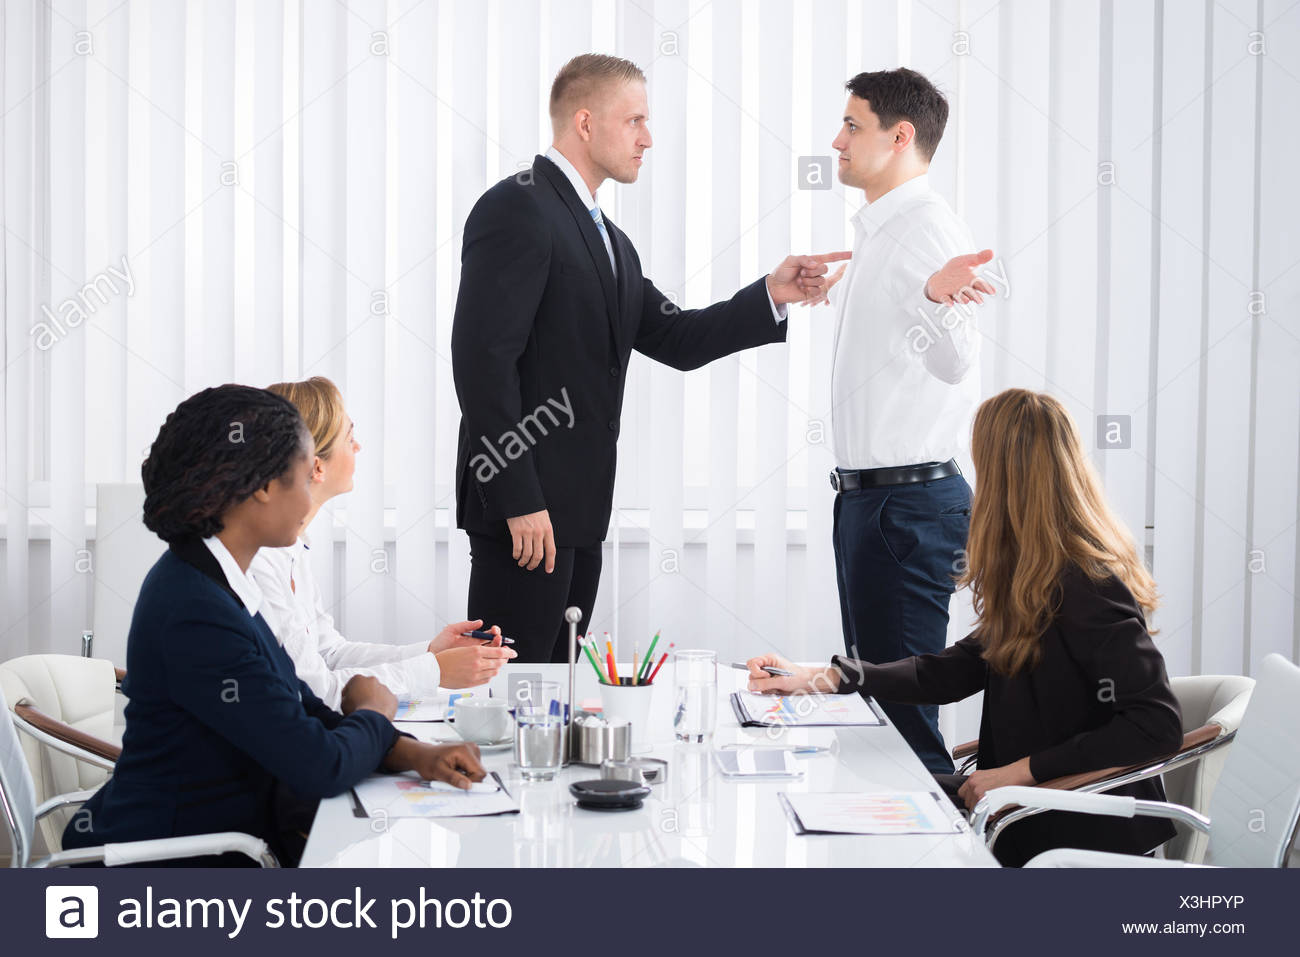 Businessman Blaming His Colleague In Meeting - Stock Image